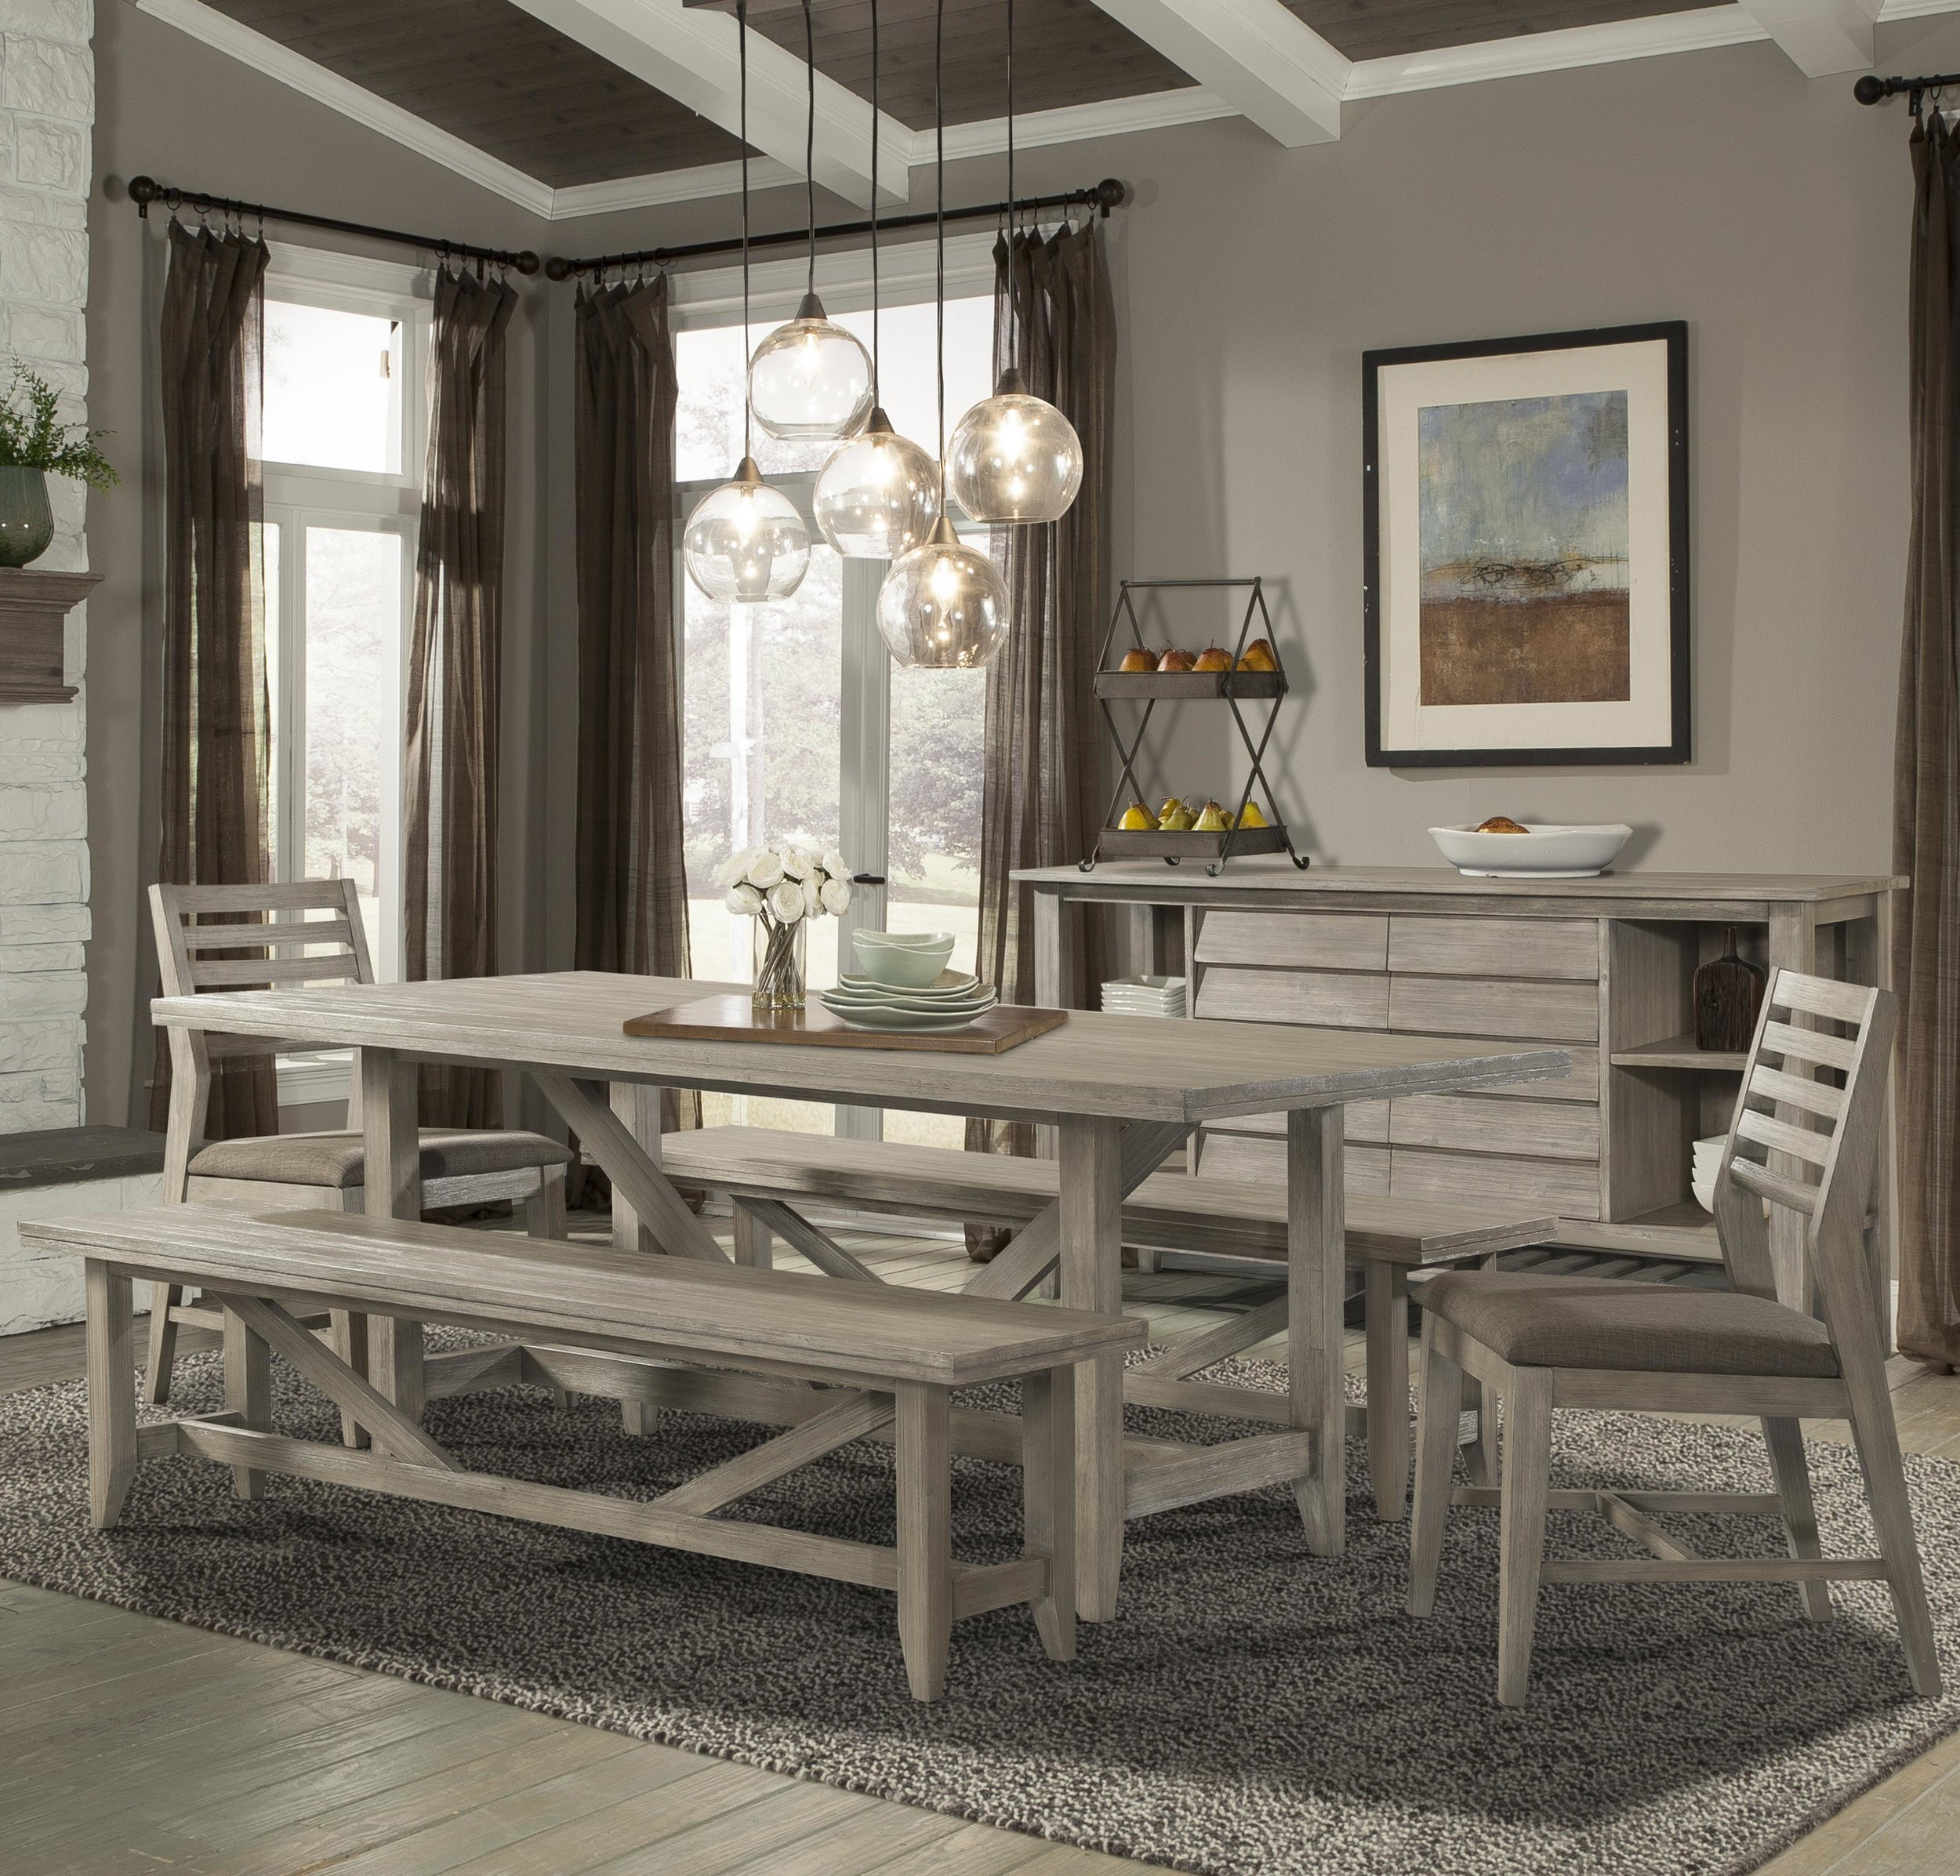 Cresent Fine Furniture - Save $100 For Every $500 You Spend!